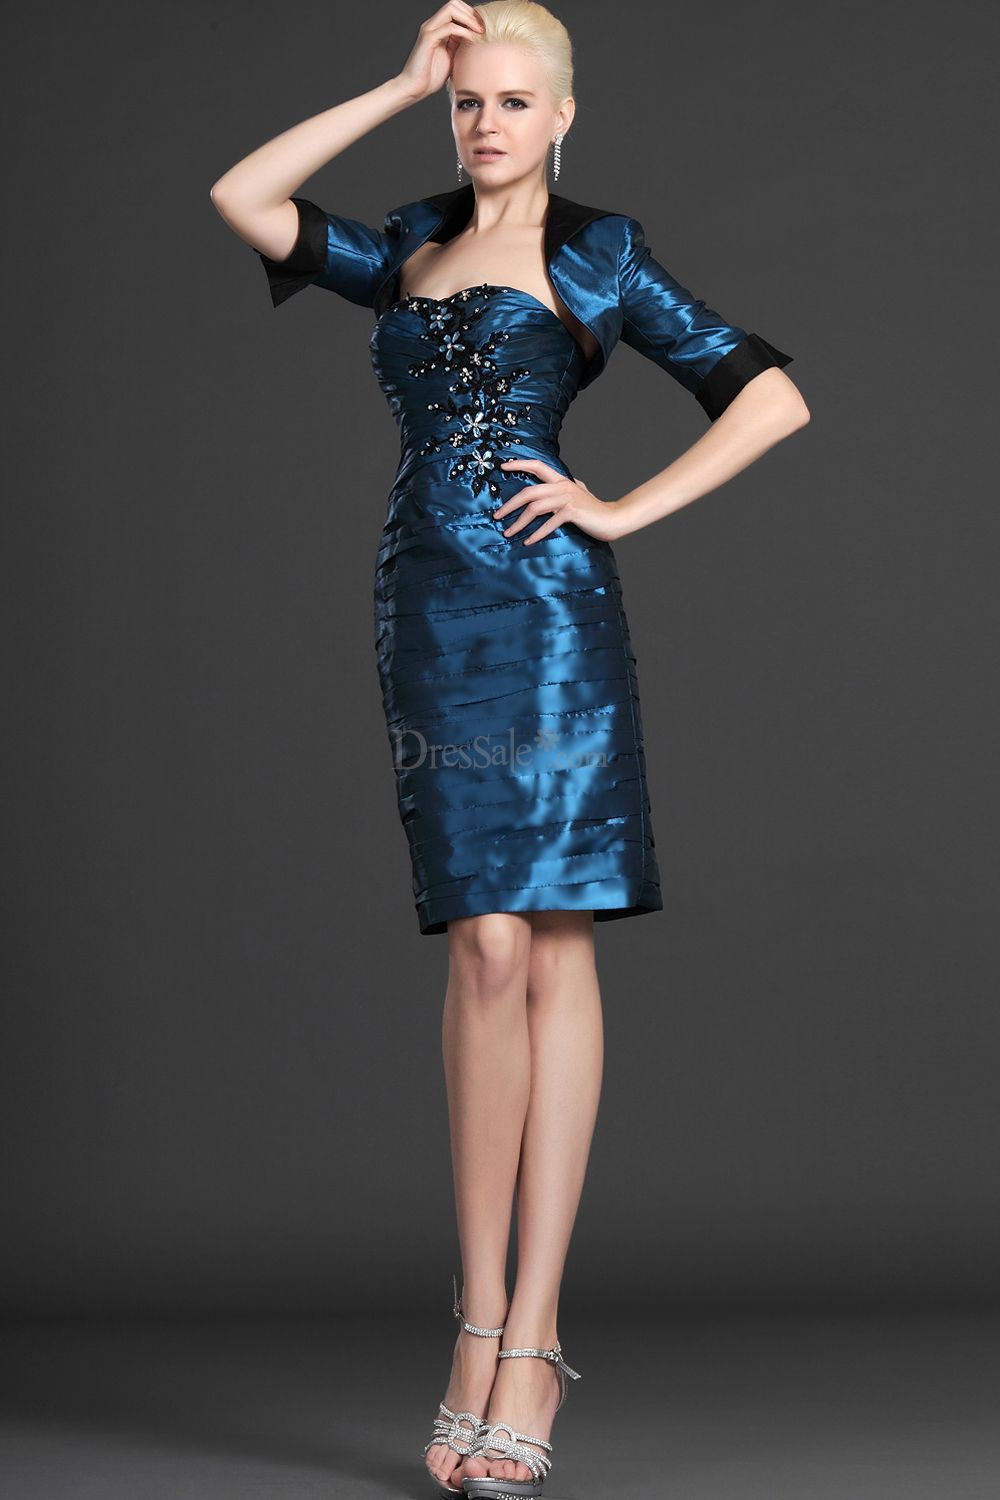 Half sleeves bolero with turn down collar dress for parents or in